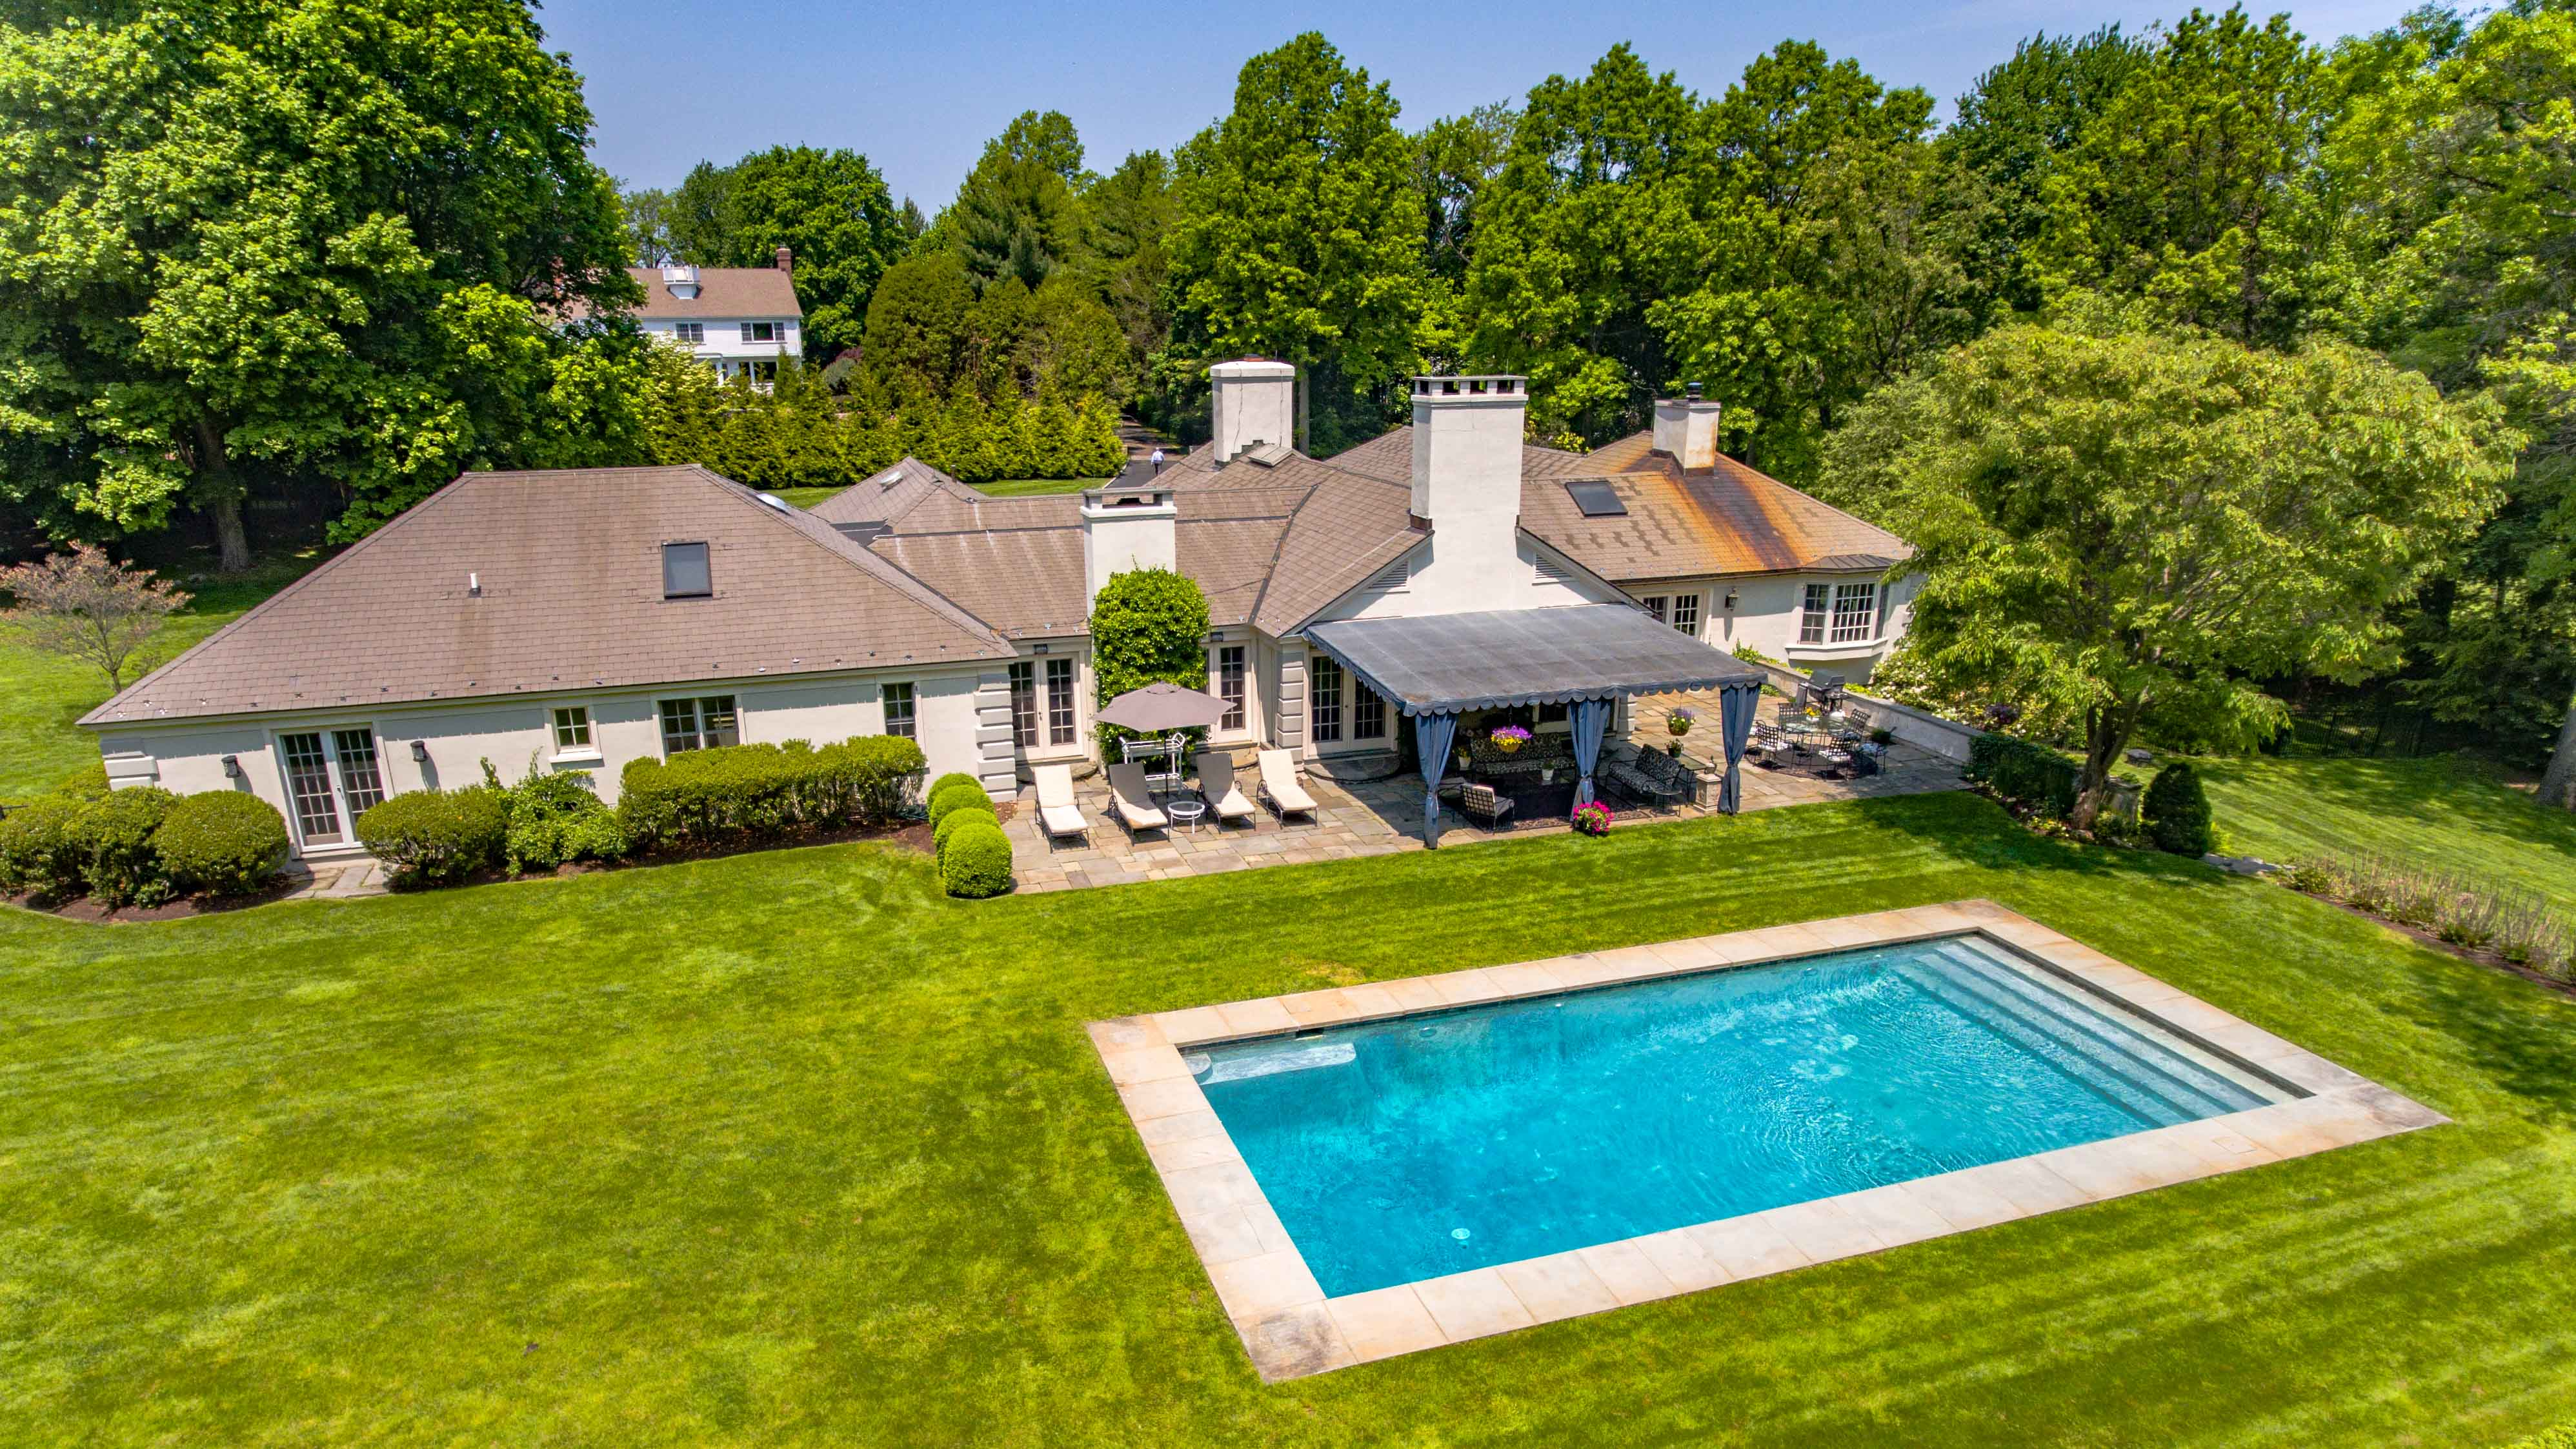 Aerial Drone Video & Photo for Real Estate